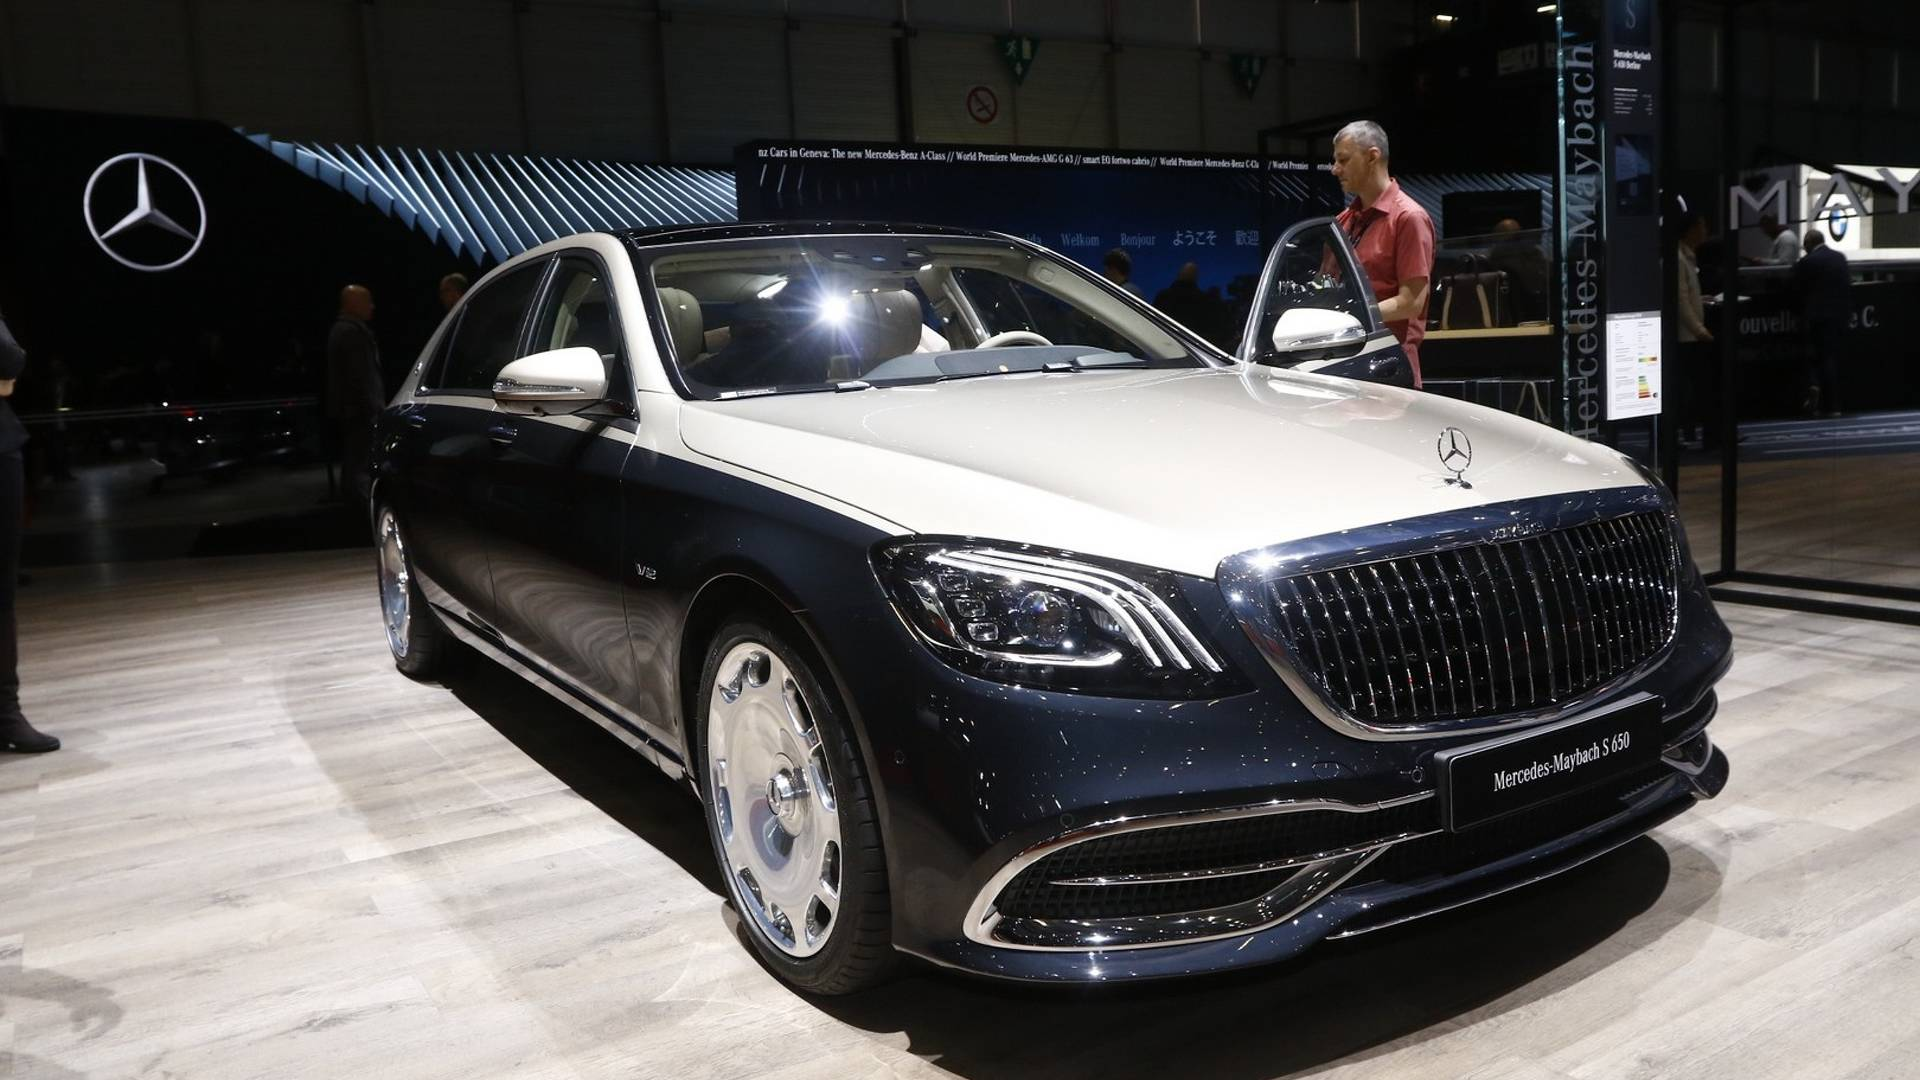 Mercedes Maybach S Class Live From Geneva Motor Show